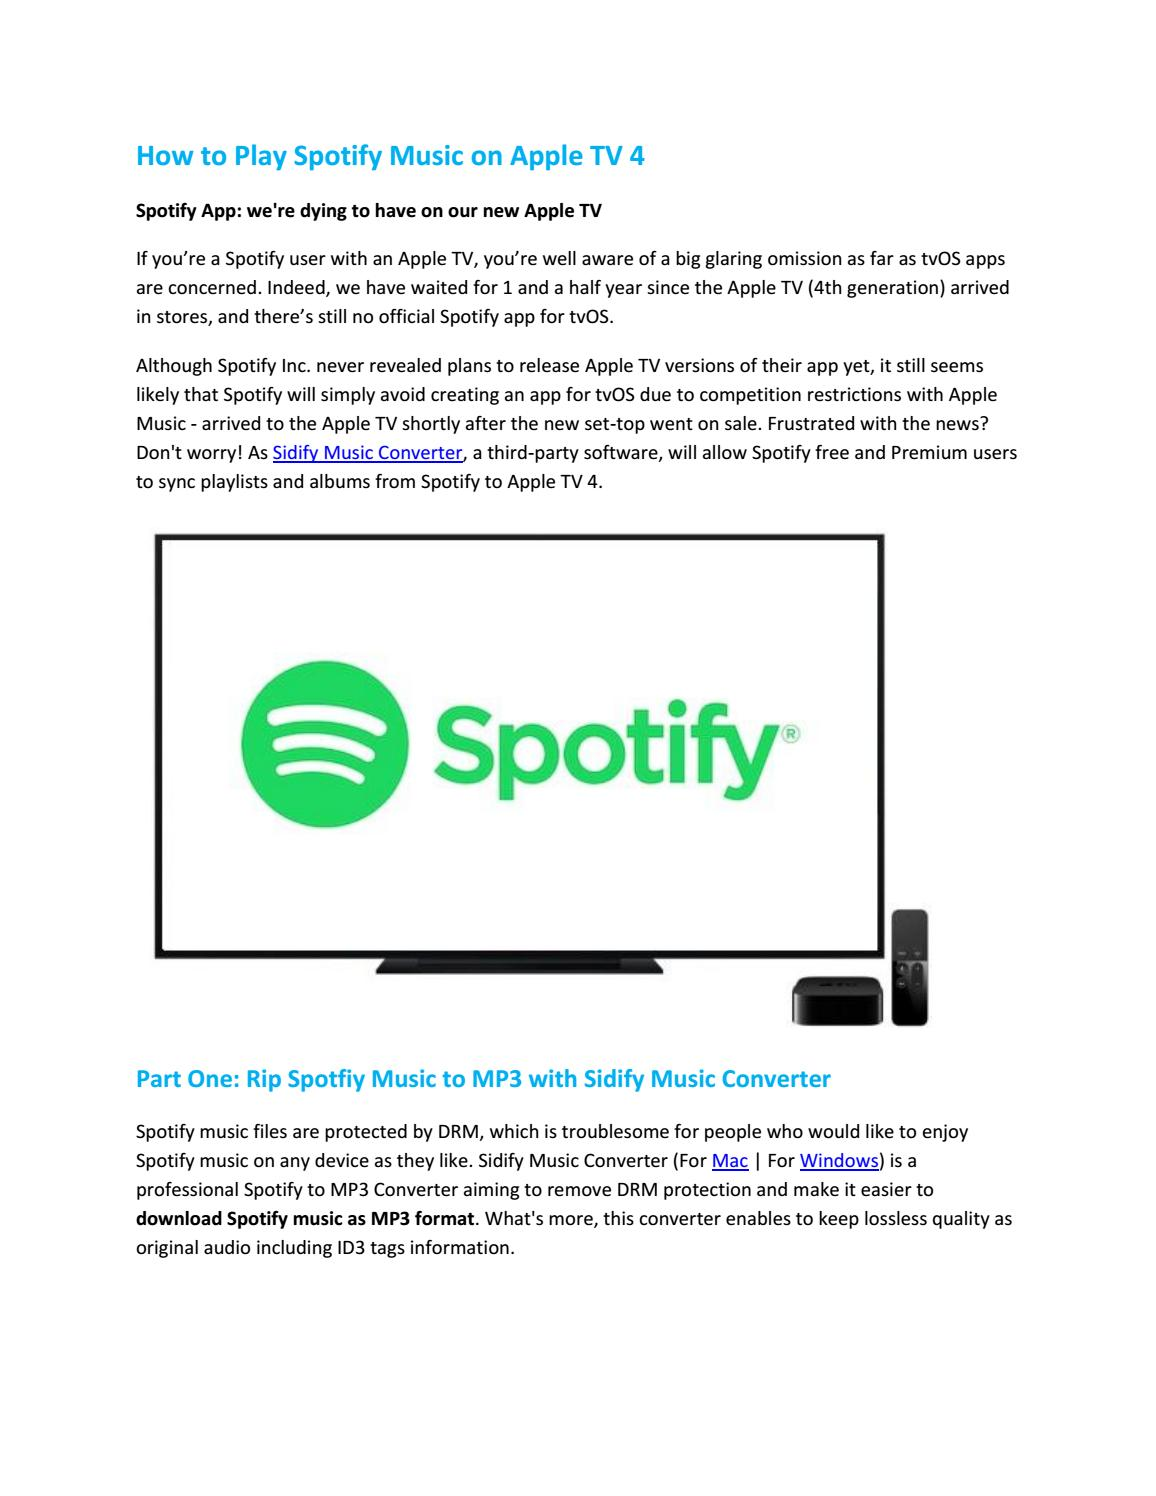 How to Play Spotify Music on Apple TV 4 by Paris Young - issuu